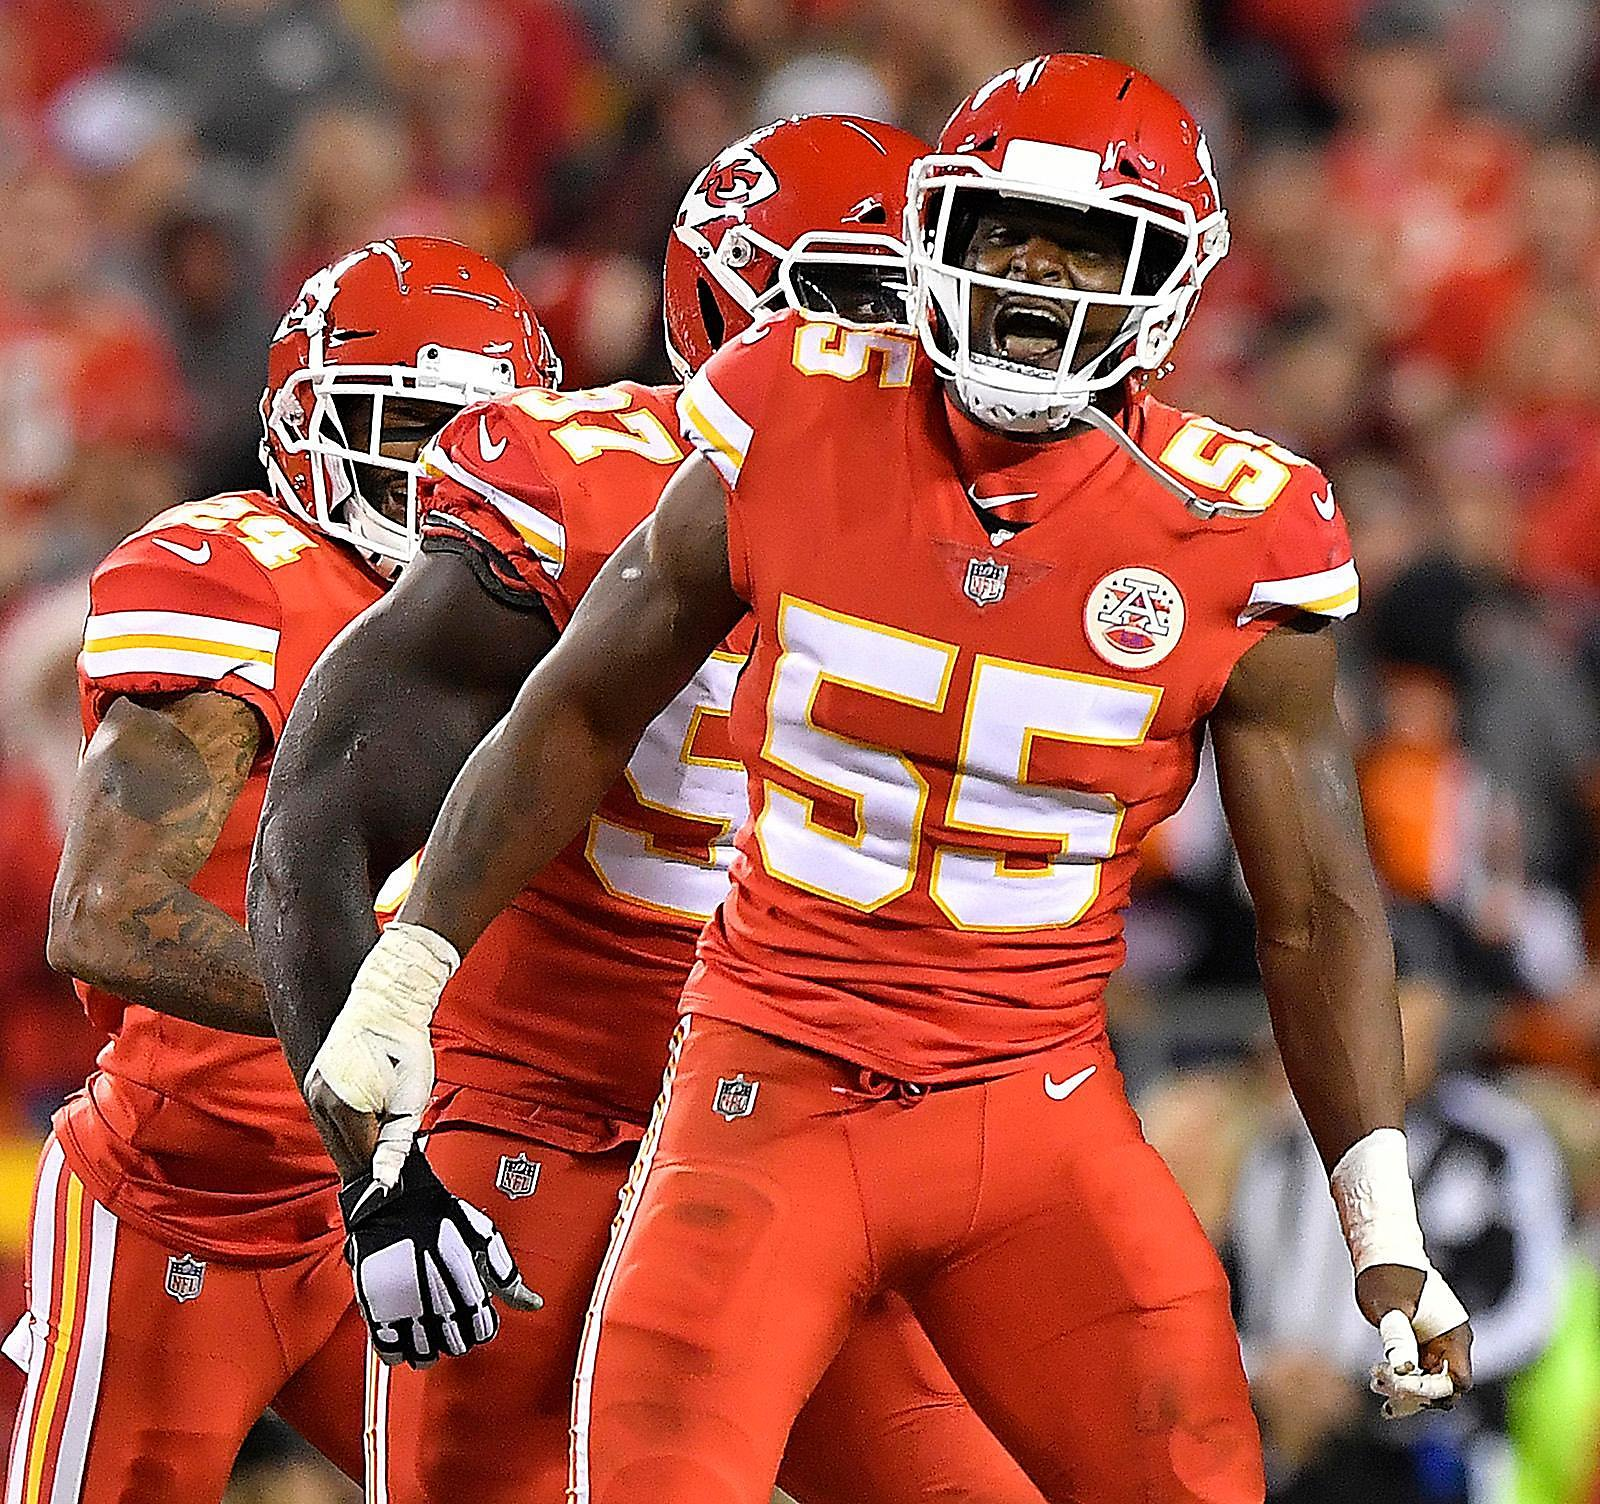 Deadspin On Twitter Report Giants Defensive End Jason: Report: 49ers Exploring Trade For Chiefs' Pass-rusher Dee